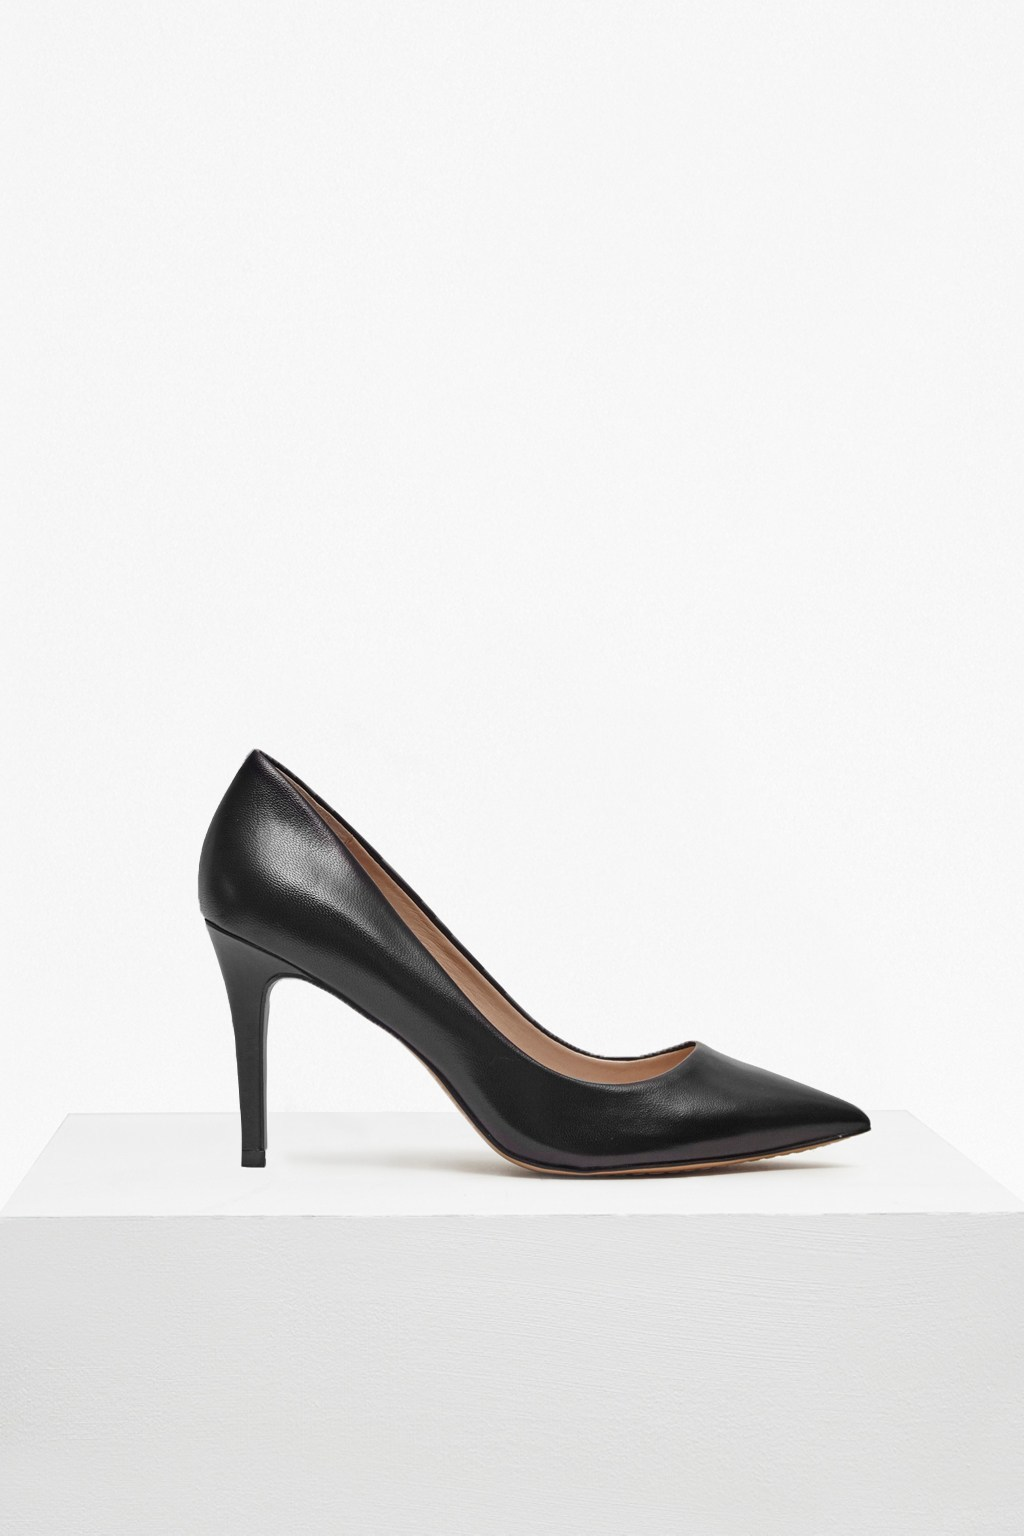 Rosalie Pointy Stiletto Heels Black - predominant colour: black; occasions: evening, work, occasion; material: leather; heel height: high; heel: stiletto; toe: pointed toe; style: courts; finish: plain; pattern: plain; wardrobe: investment; season: a/w 2016